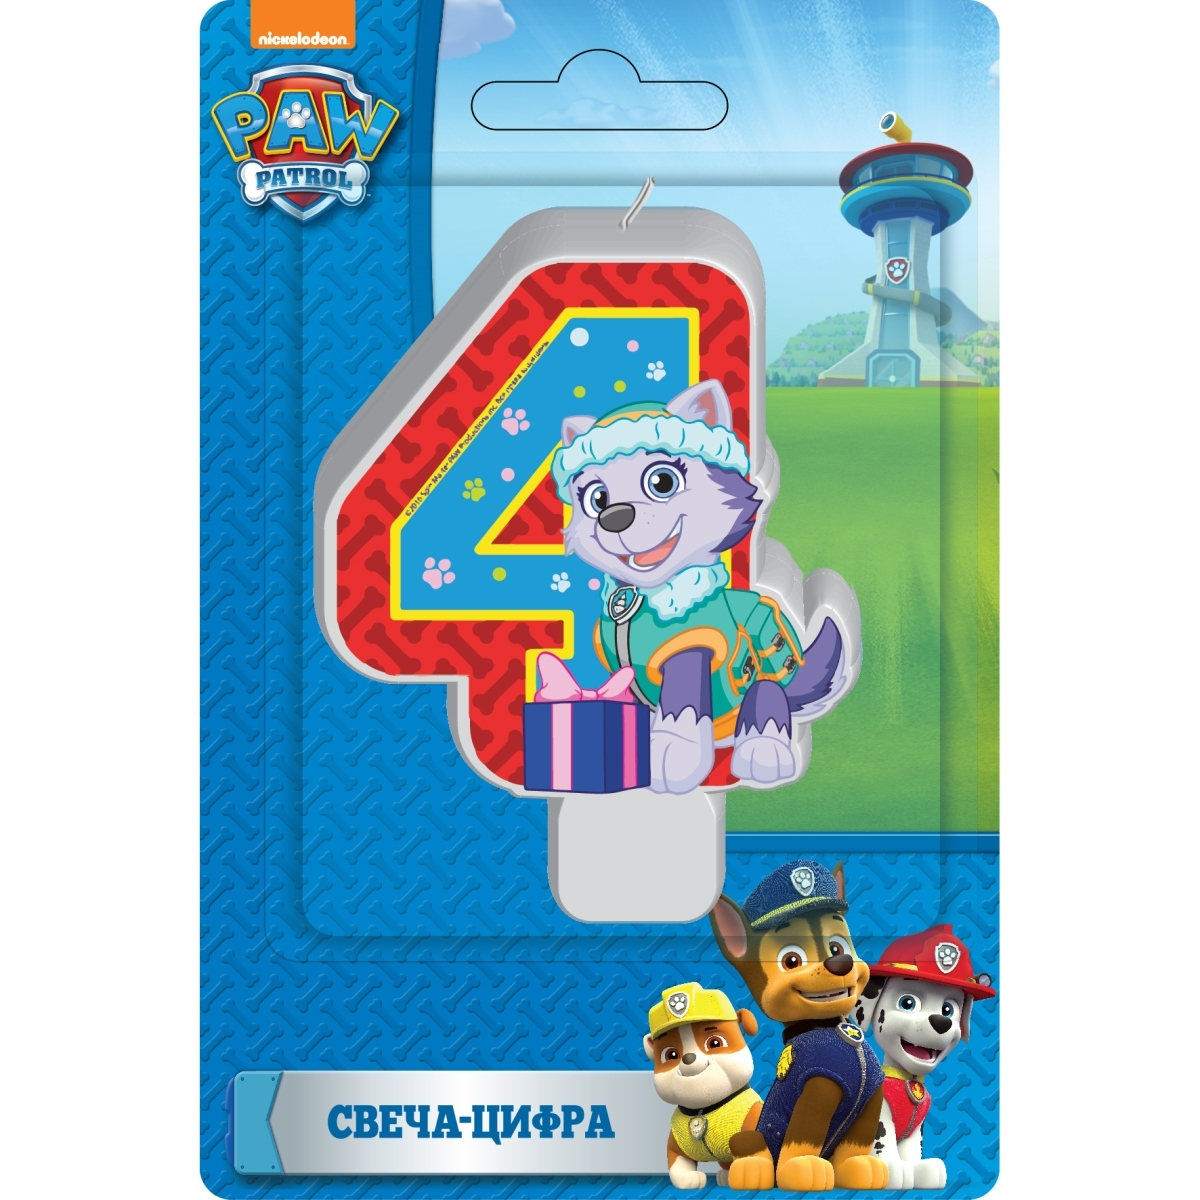 Paw Patrol Paw Patrol Свеча Paw Patrol «Цифра 4» 20cm canine patrol dog toys russian anime doll action figures car patrol puppy toy patrulla canina juguetes gift for child m134